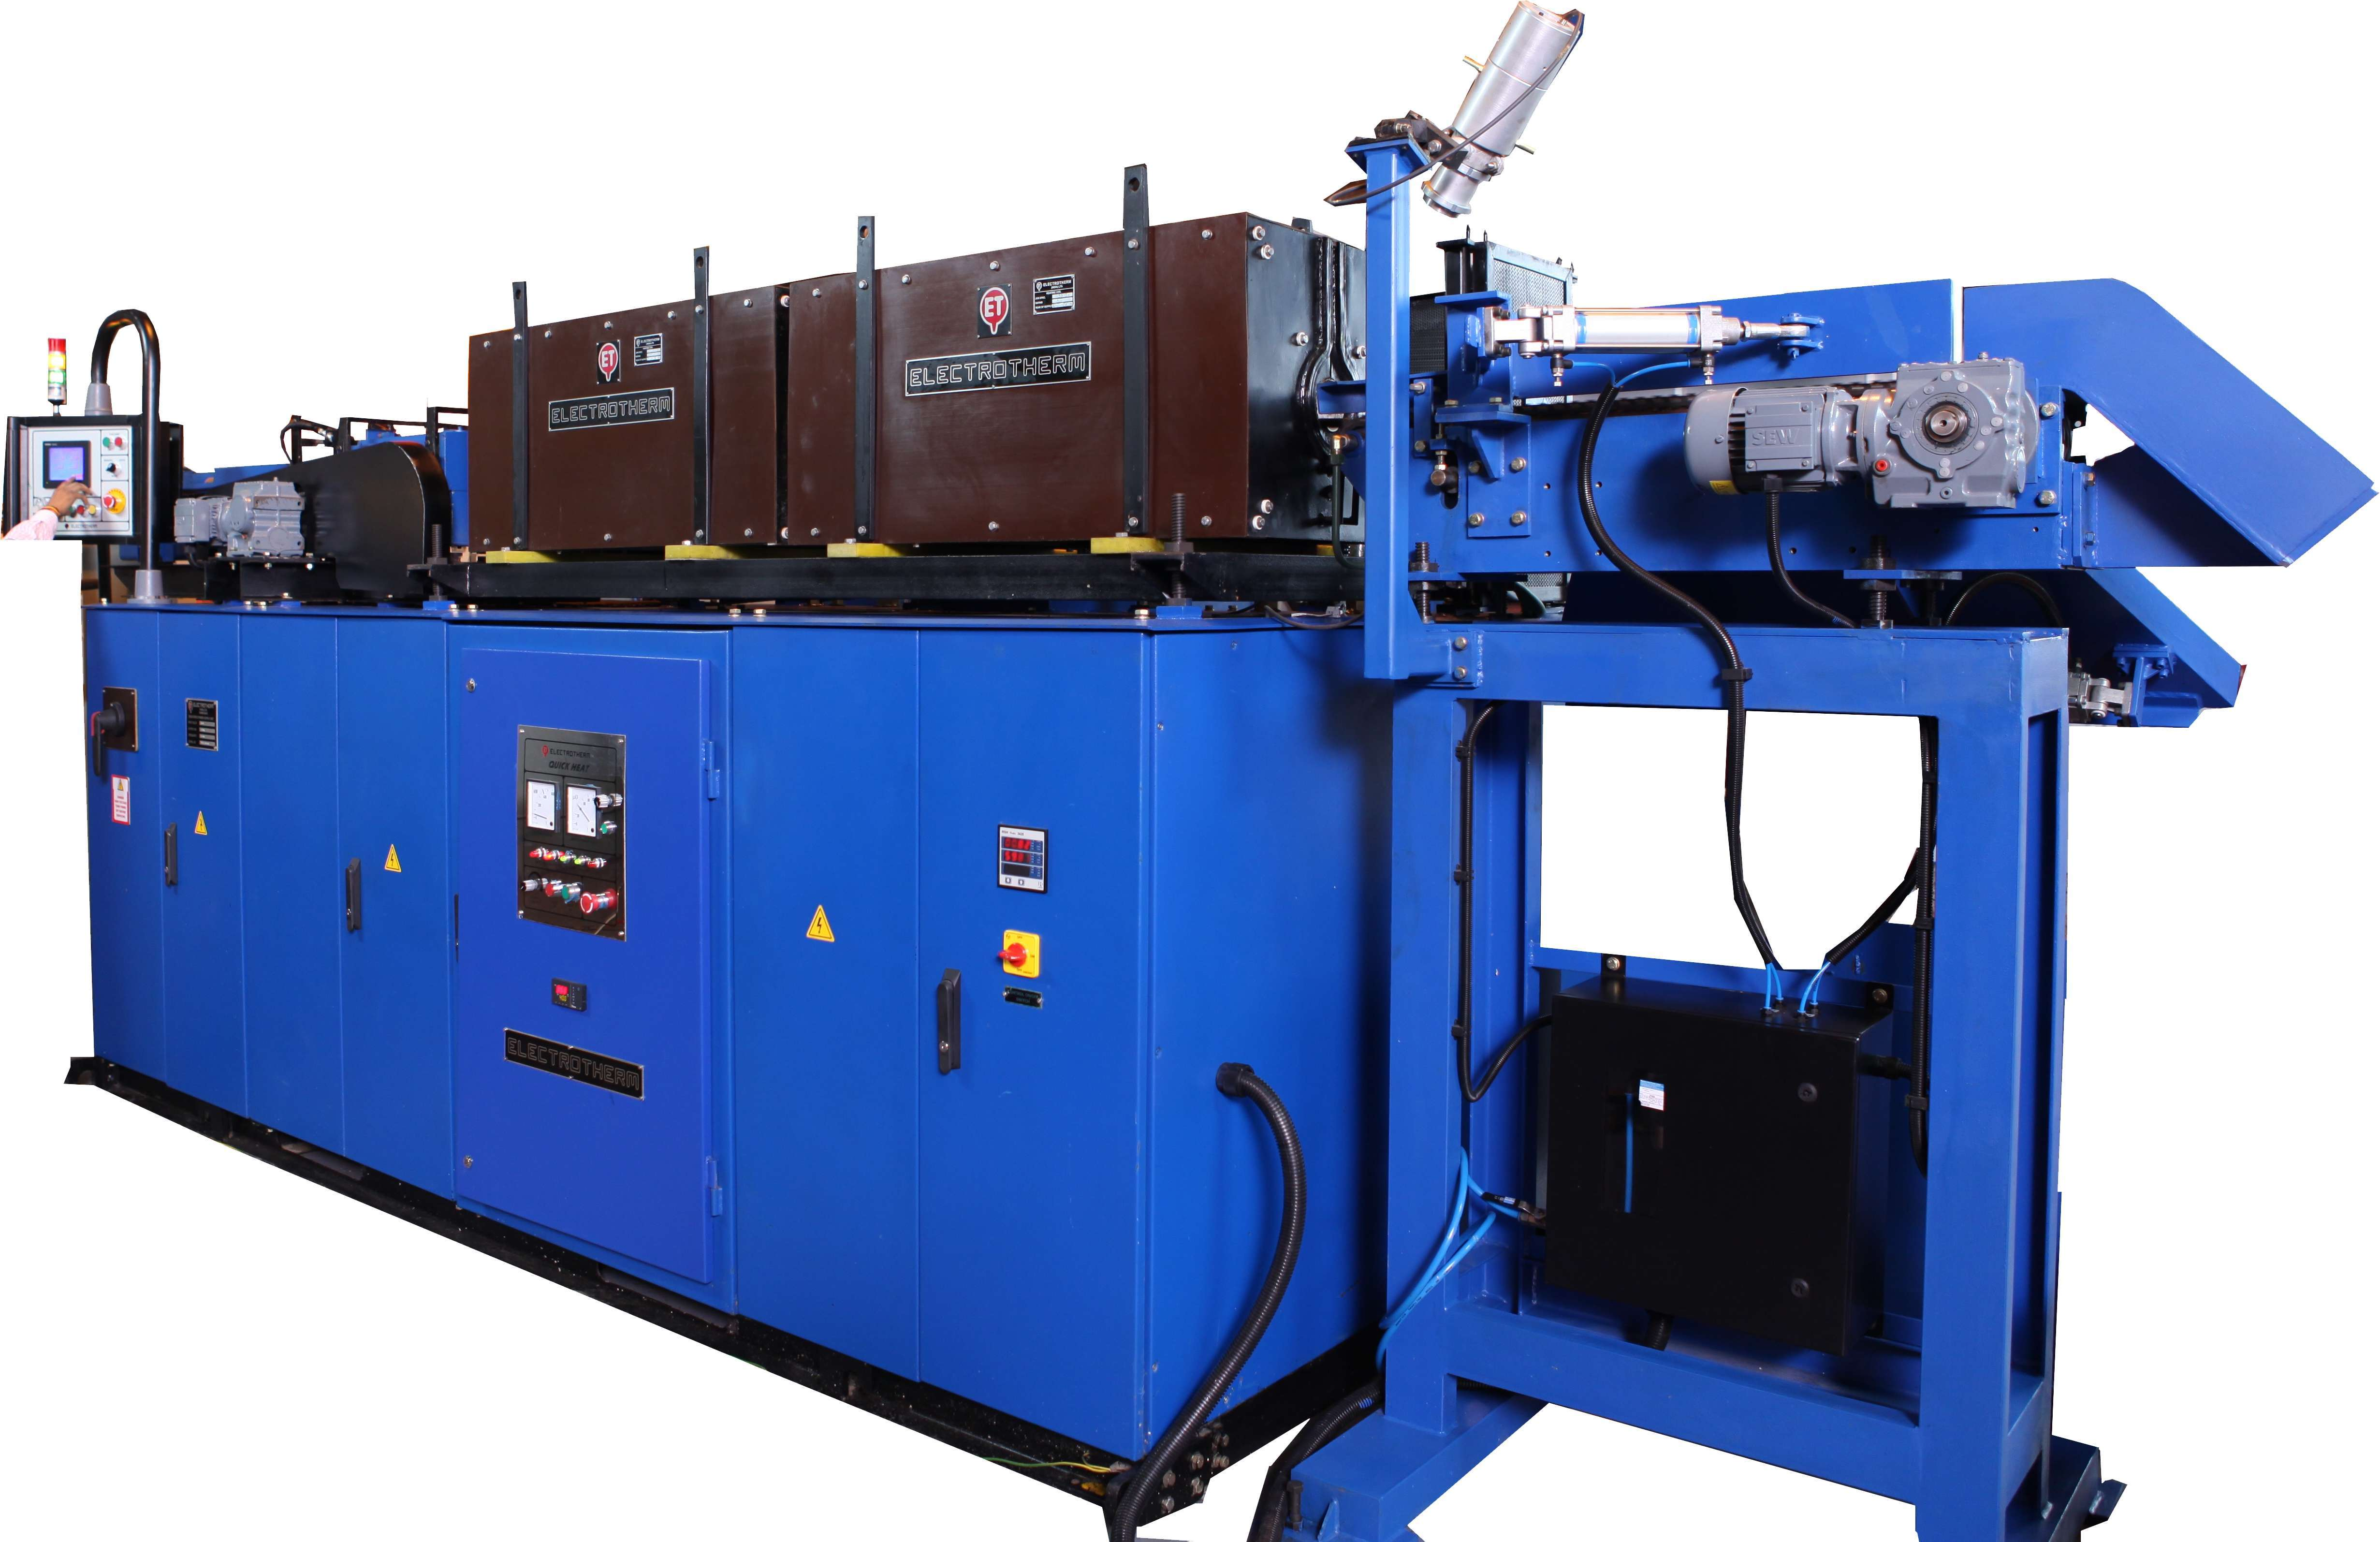 HNH Billet Heater - Induction Forging Furnace for Steel, Copper & Aluminum